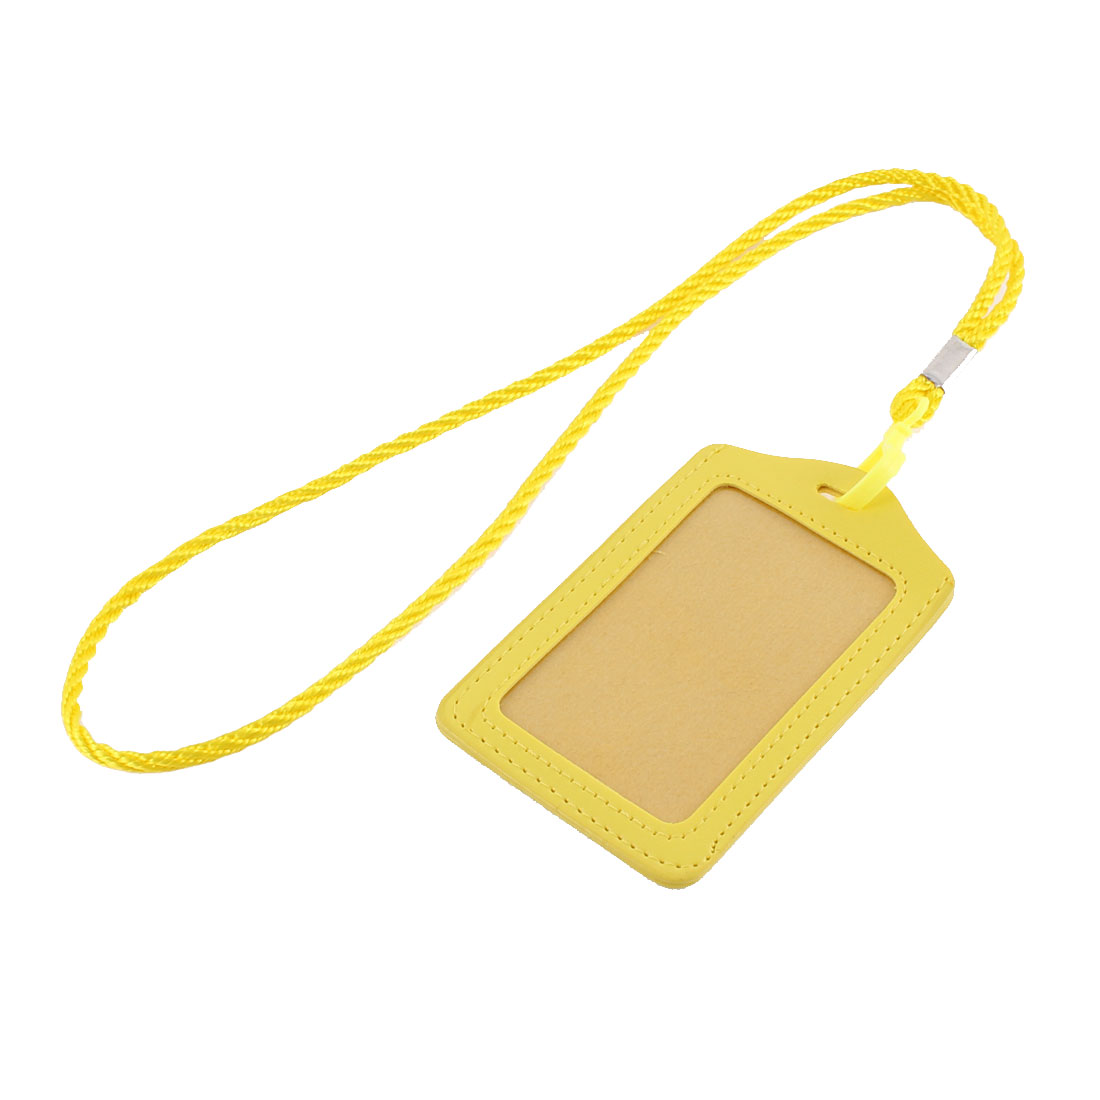 Faux Leather Lanyard Vertical Office Name ID Card Badge Holder Container Yellow